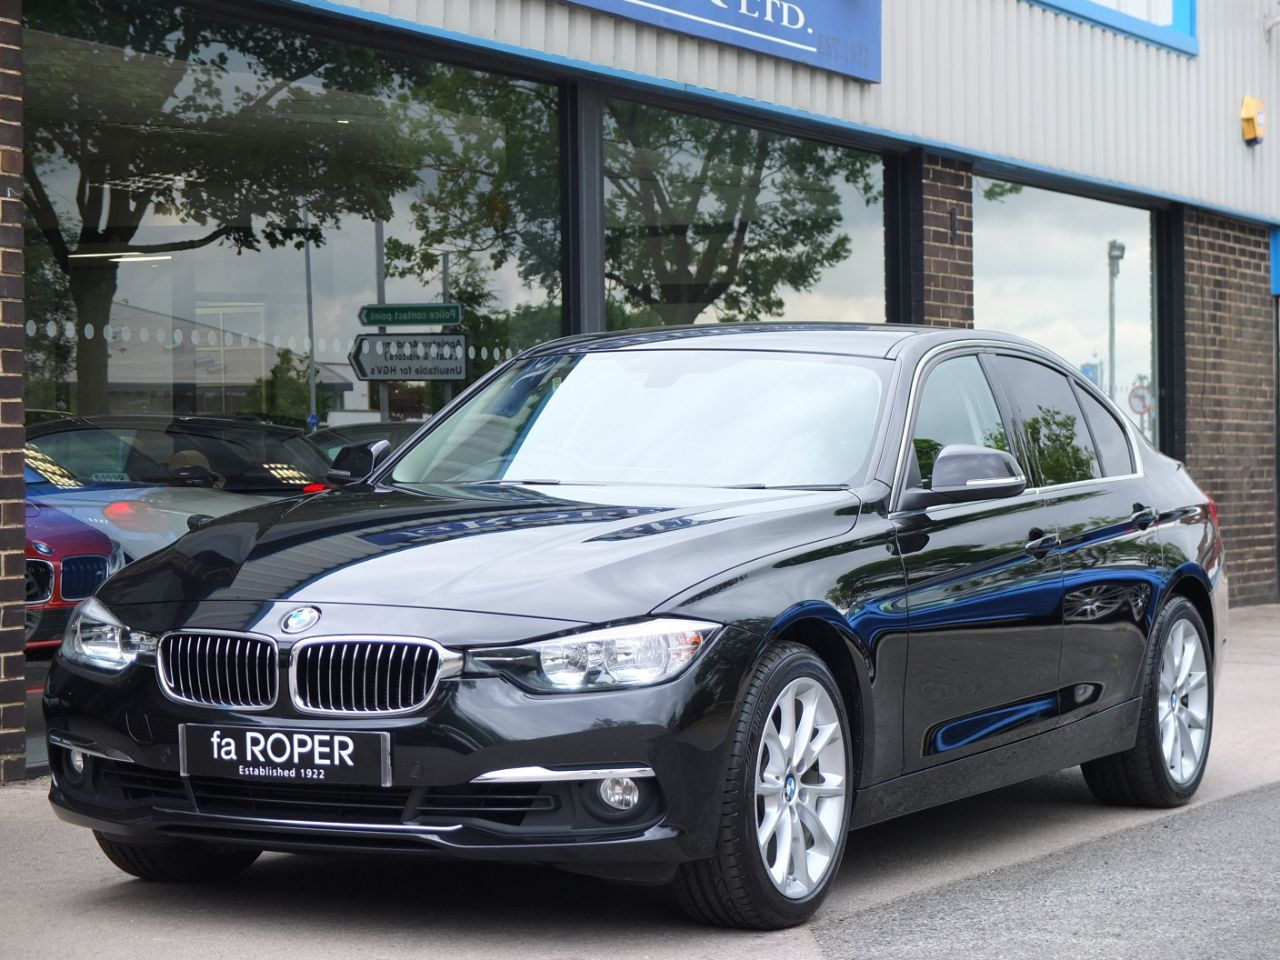 BMW 3 Series 3.0 330d xDrive Luxury Auto Saloon Diesel Black Sapphire MetallicBMW 3 Series 3.0 330d xDrive Luxury Auto Saloon Diesel Black Sapphire Metallic at fa Roper Ltd Bradford